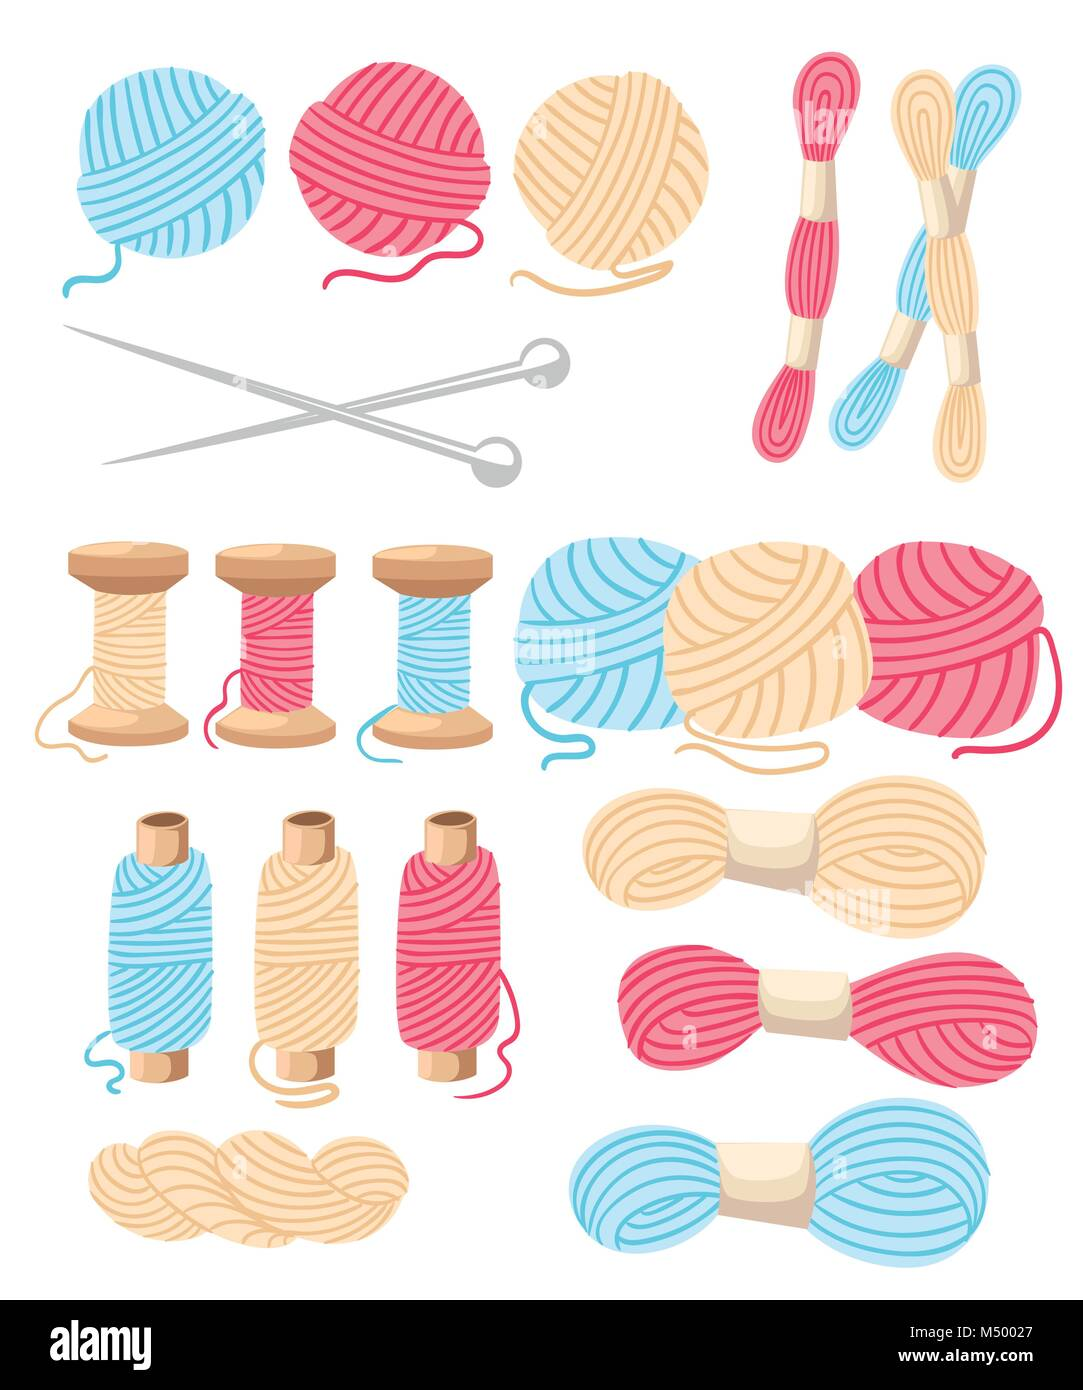 Threads for sewing for cross stitching set tools for sewing knitting needles vector wool knitwear yarn thread knitting - Stock Vector